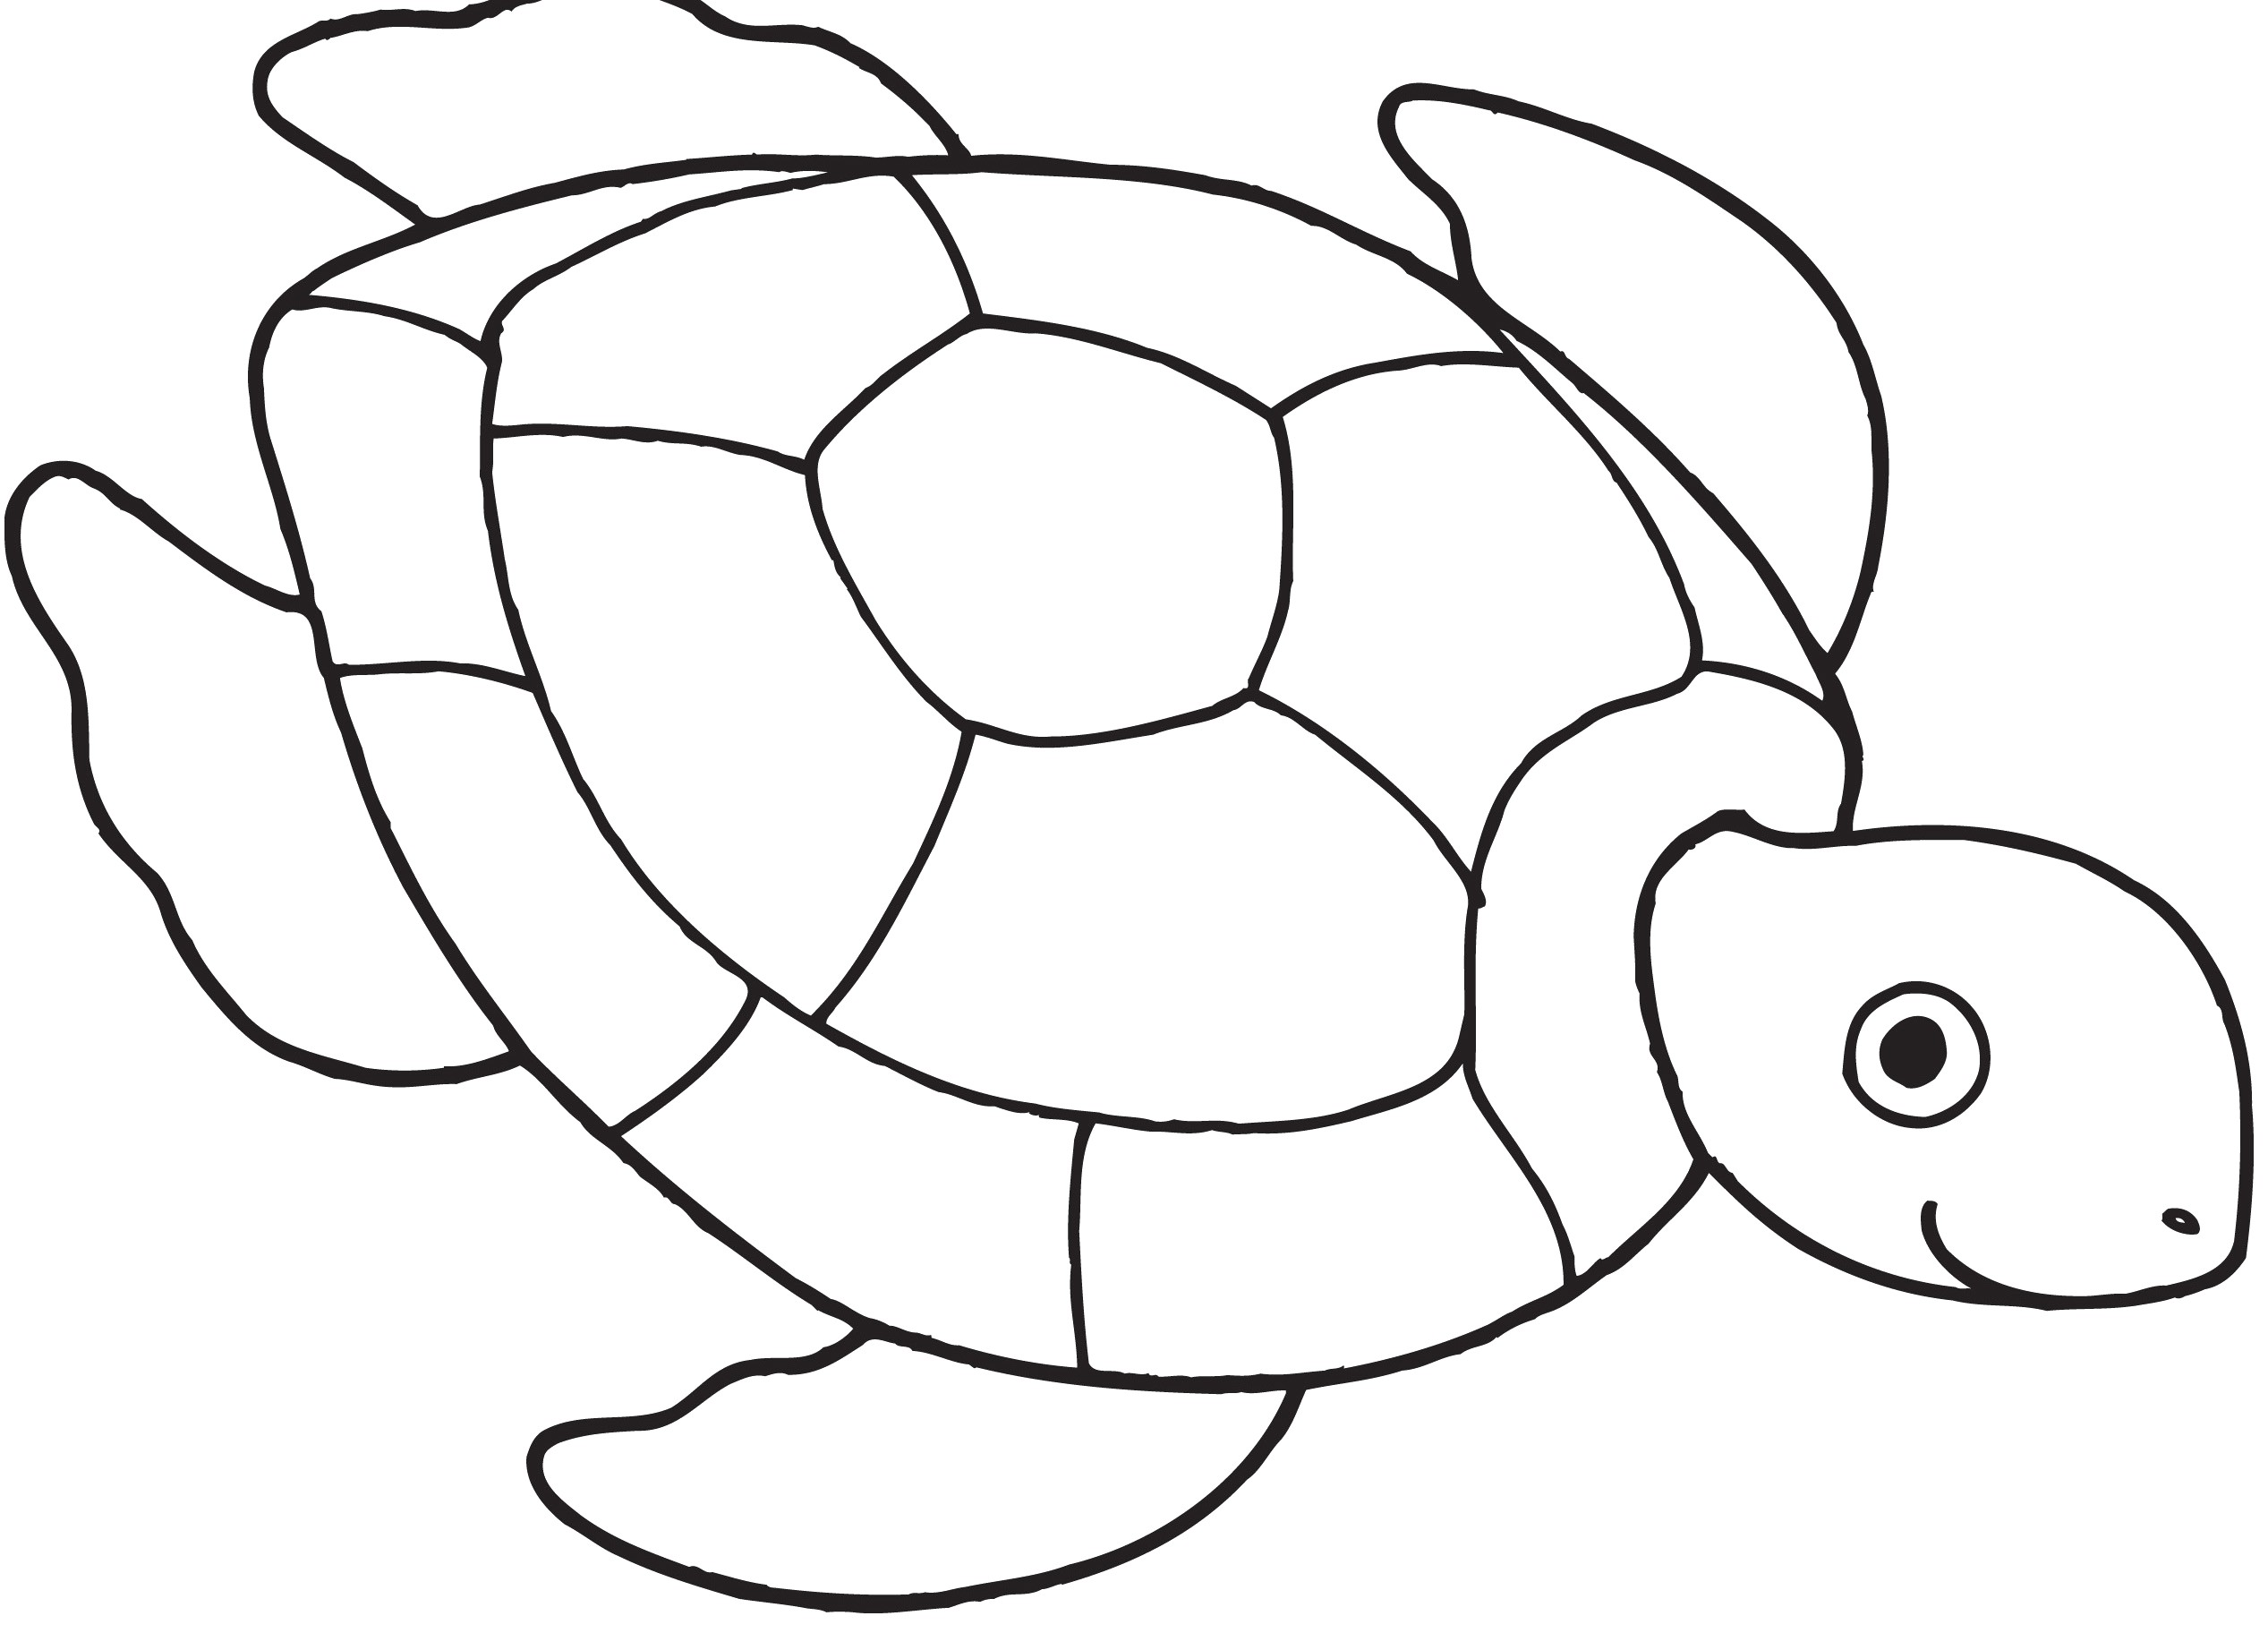 Turtle clipart black and white 3 » Clipart Station.